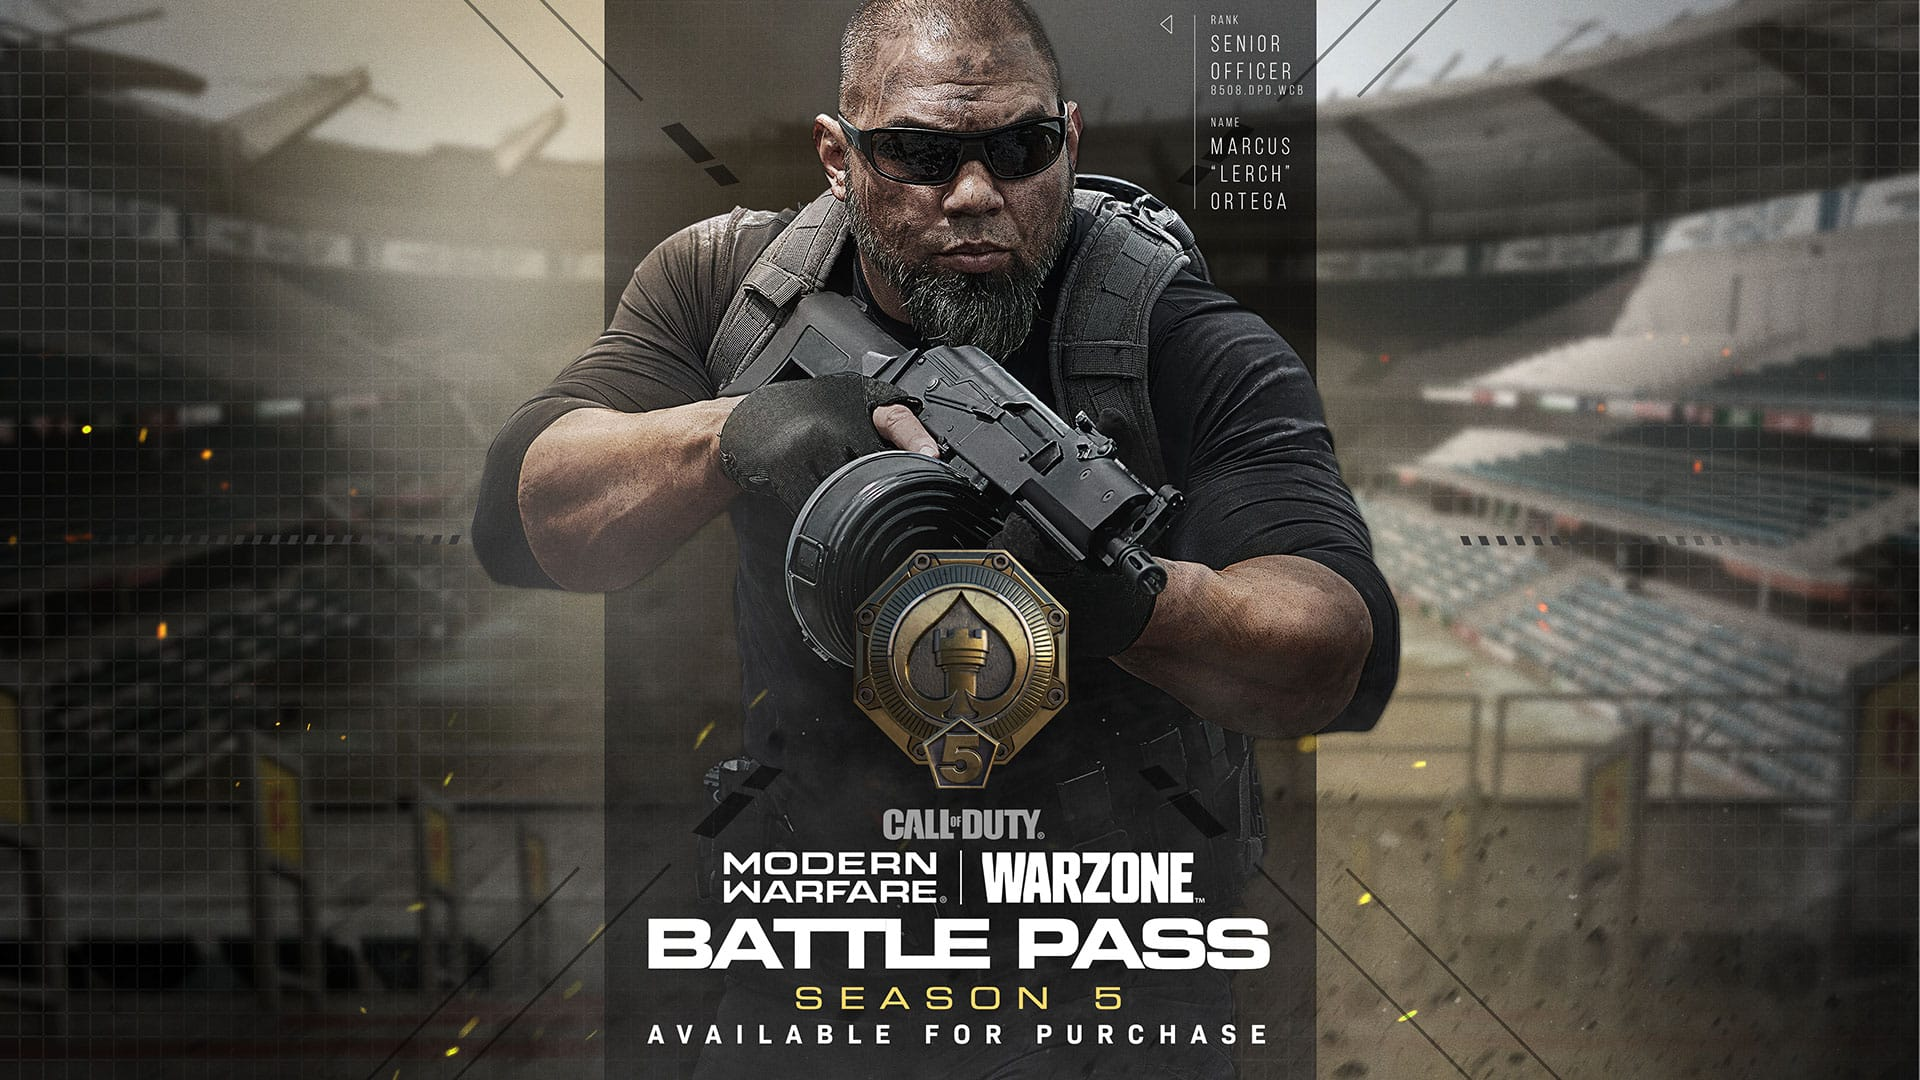 Modern Warfare Warzone Season 5 Battle Pass Overview Charlie Intel